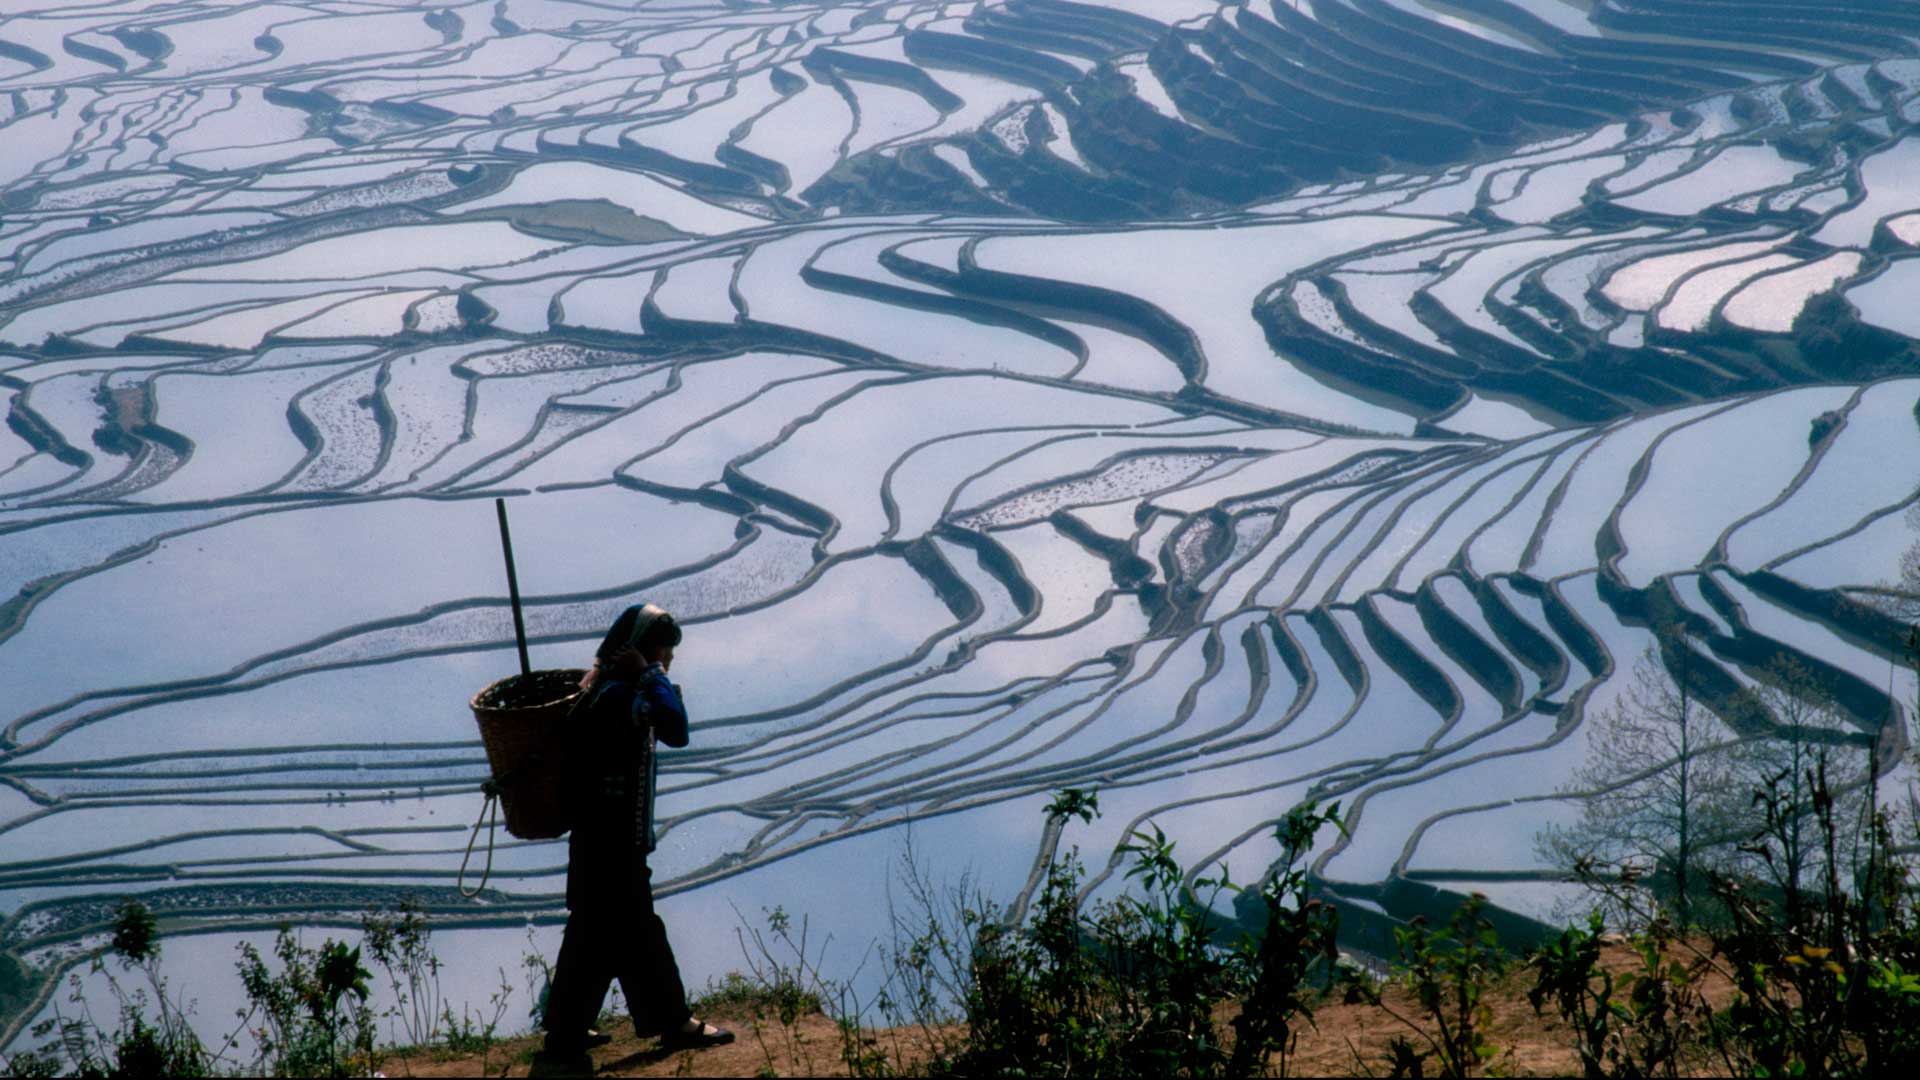 Hani girl carrying a basket amid rice terraces of the Yunnan Province, China with GeoEx